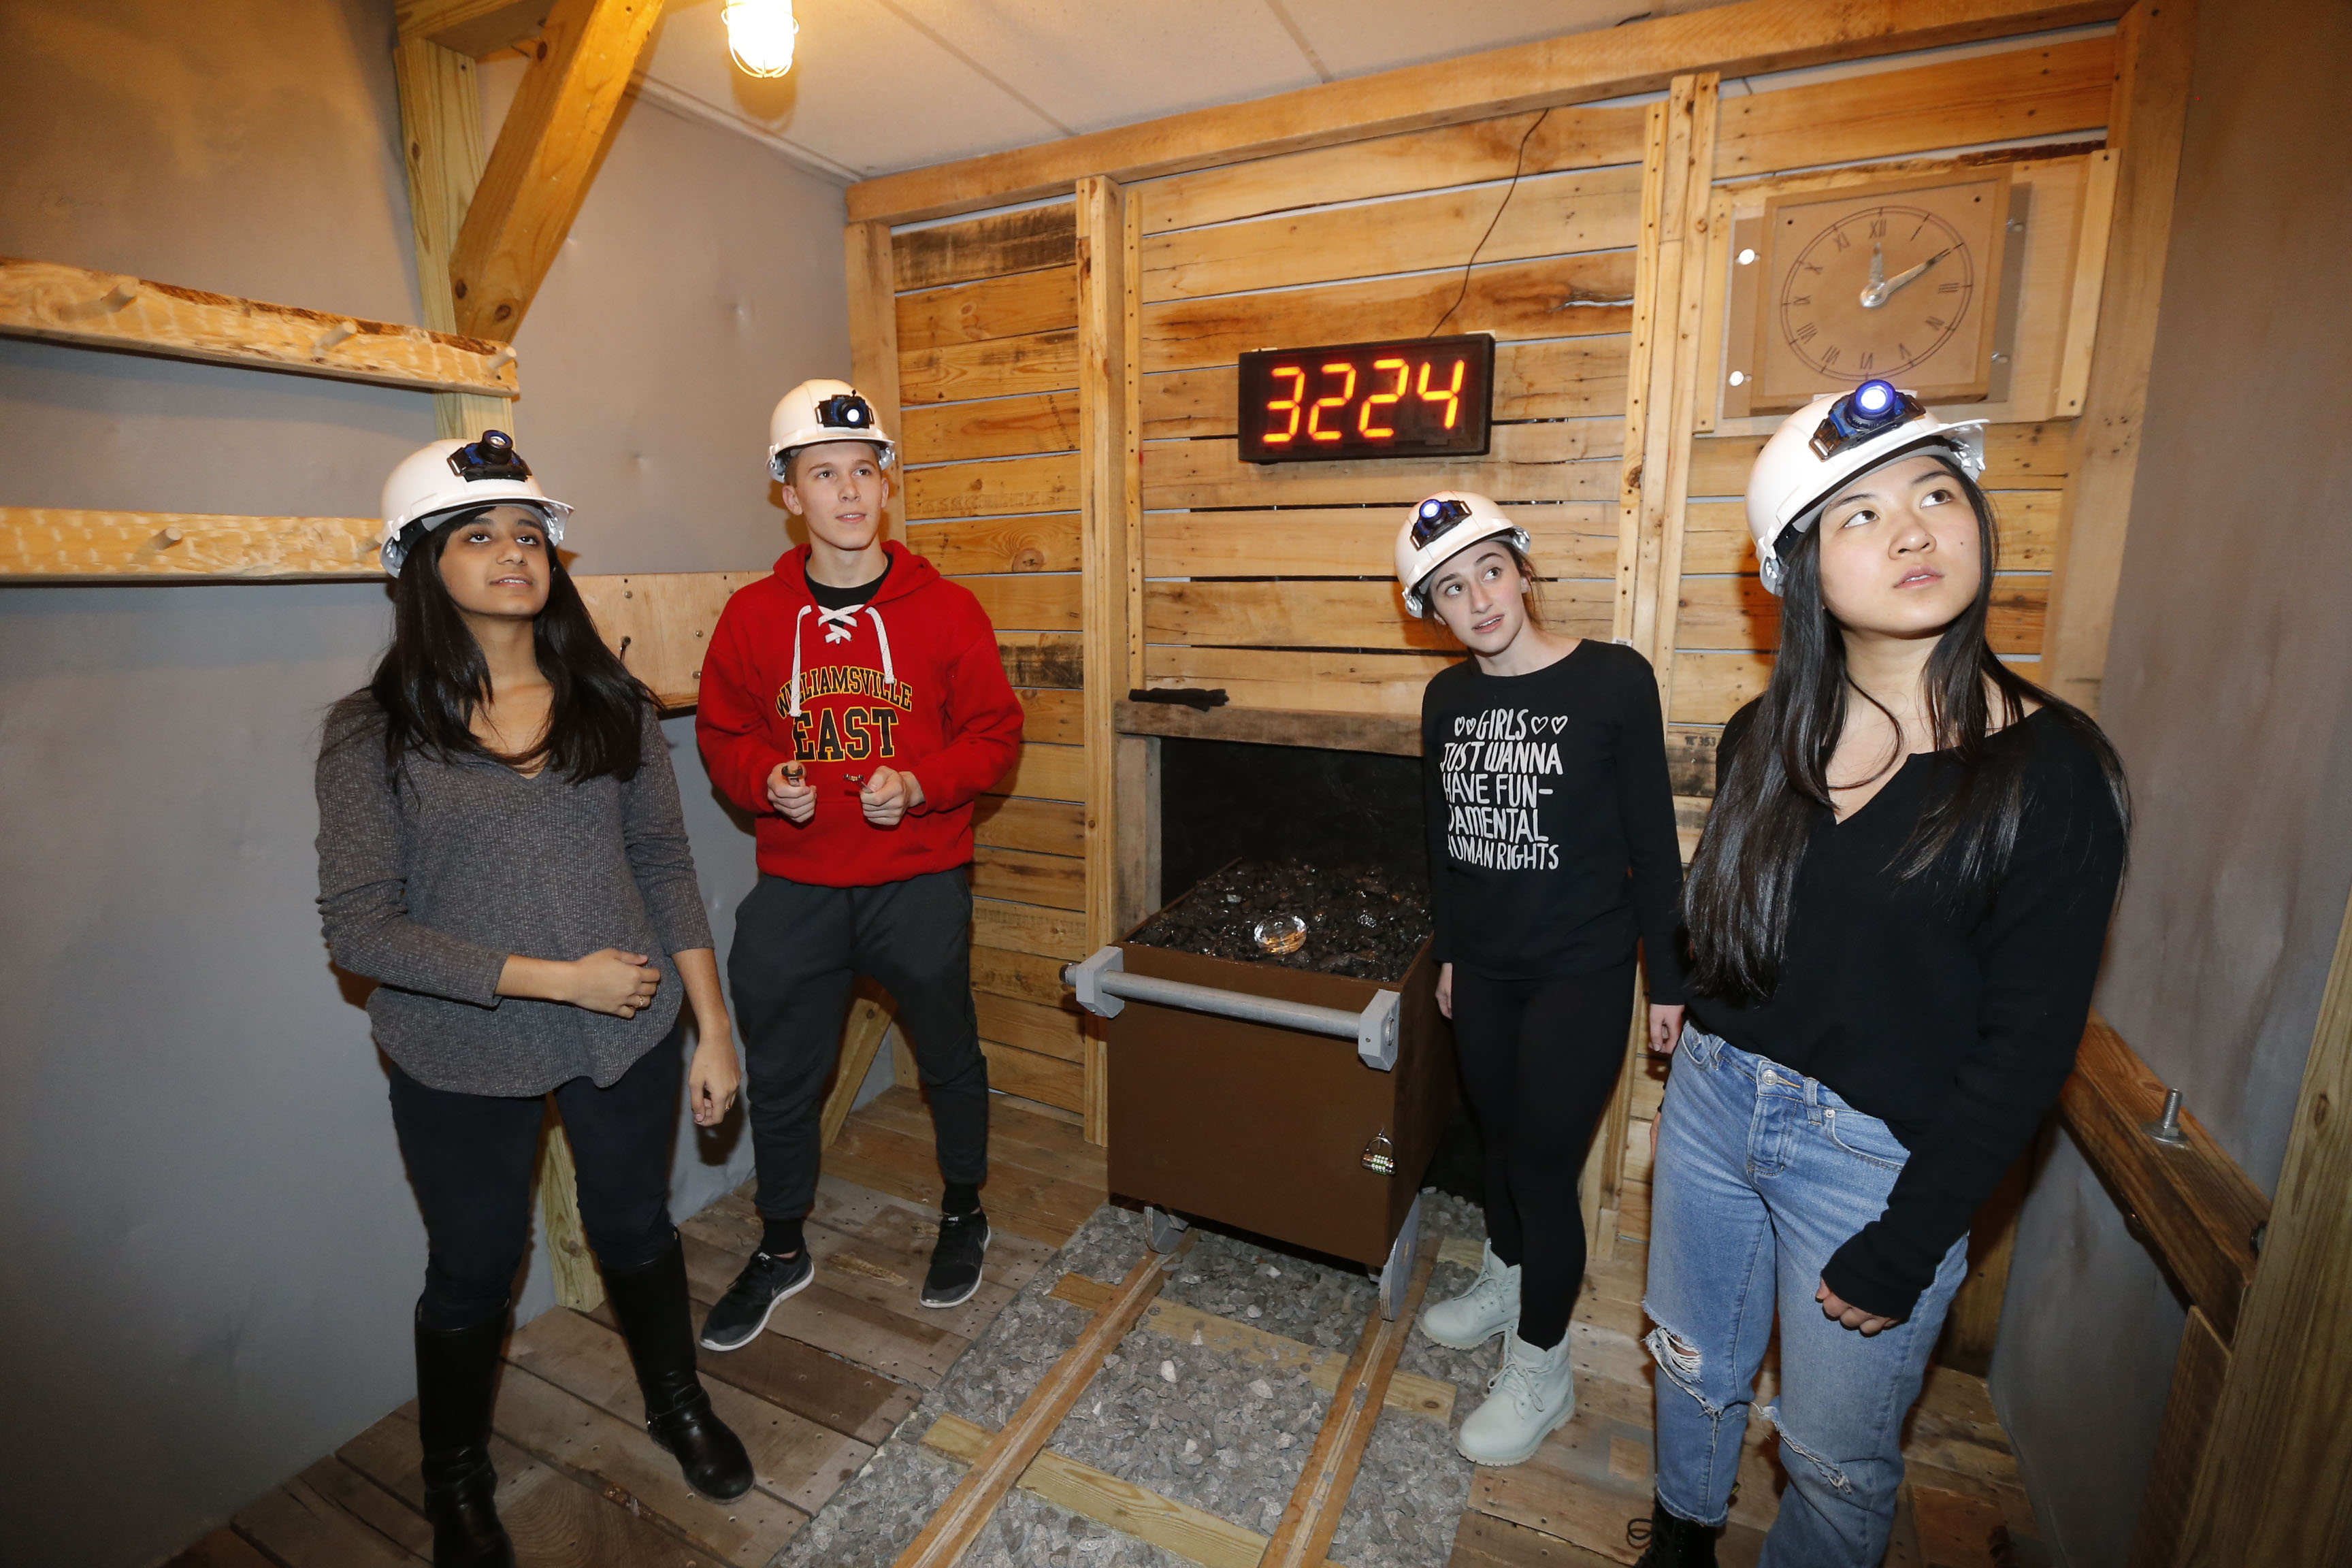 From left, Sarina Divan, 17, Timmy Finley, 18, Morgan Awner, 18, and Rachel Qiao, 17 work together to try and find clues in one of the rooms at 3600 Escape on Hertel Ave. in Buffalo onTuesday, March 28, 2017.  (Robert Kirkham/Buffalo News)